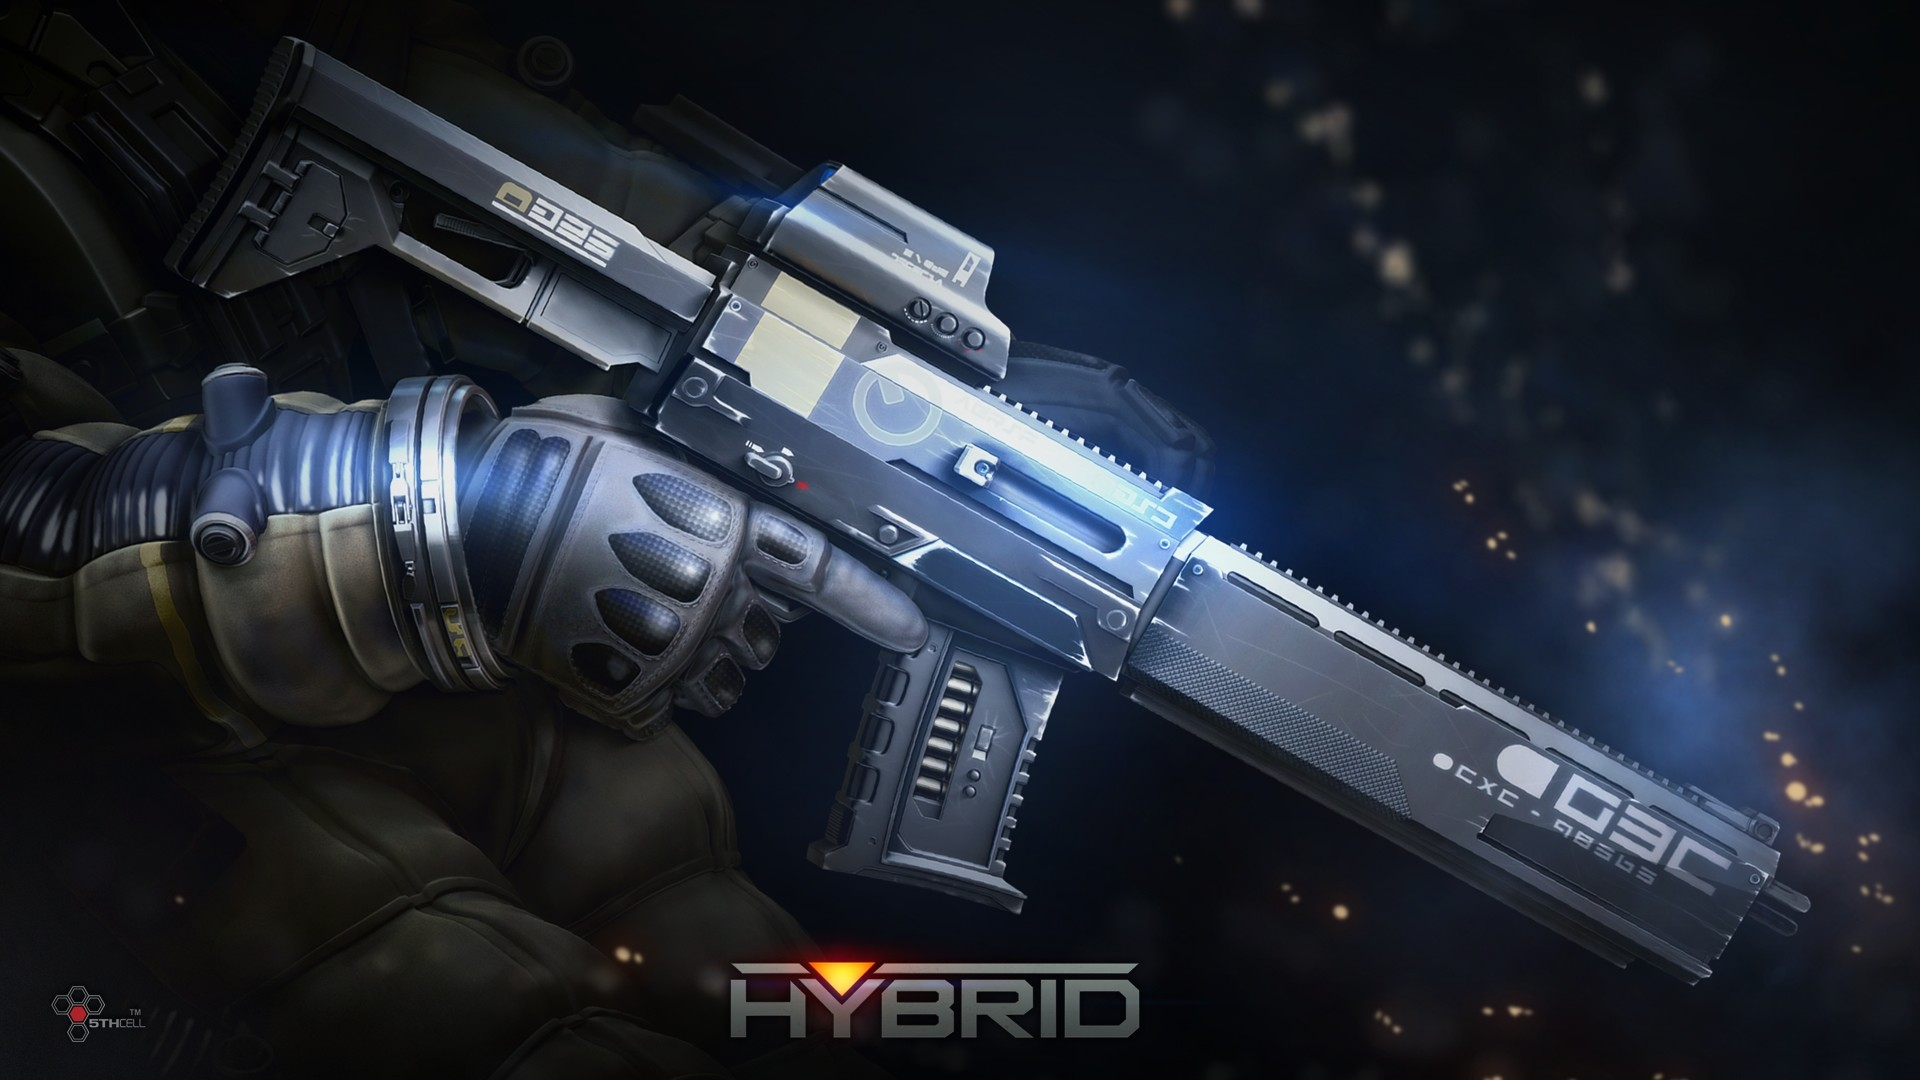 1920x1080 Hybrid Weapon - Hybrid Wallpaper